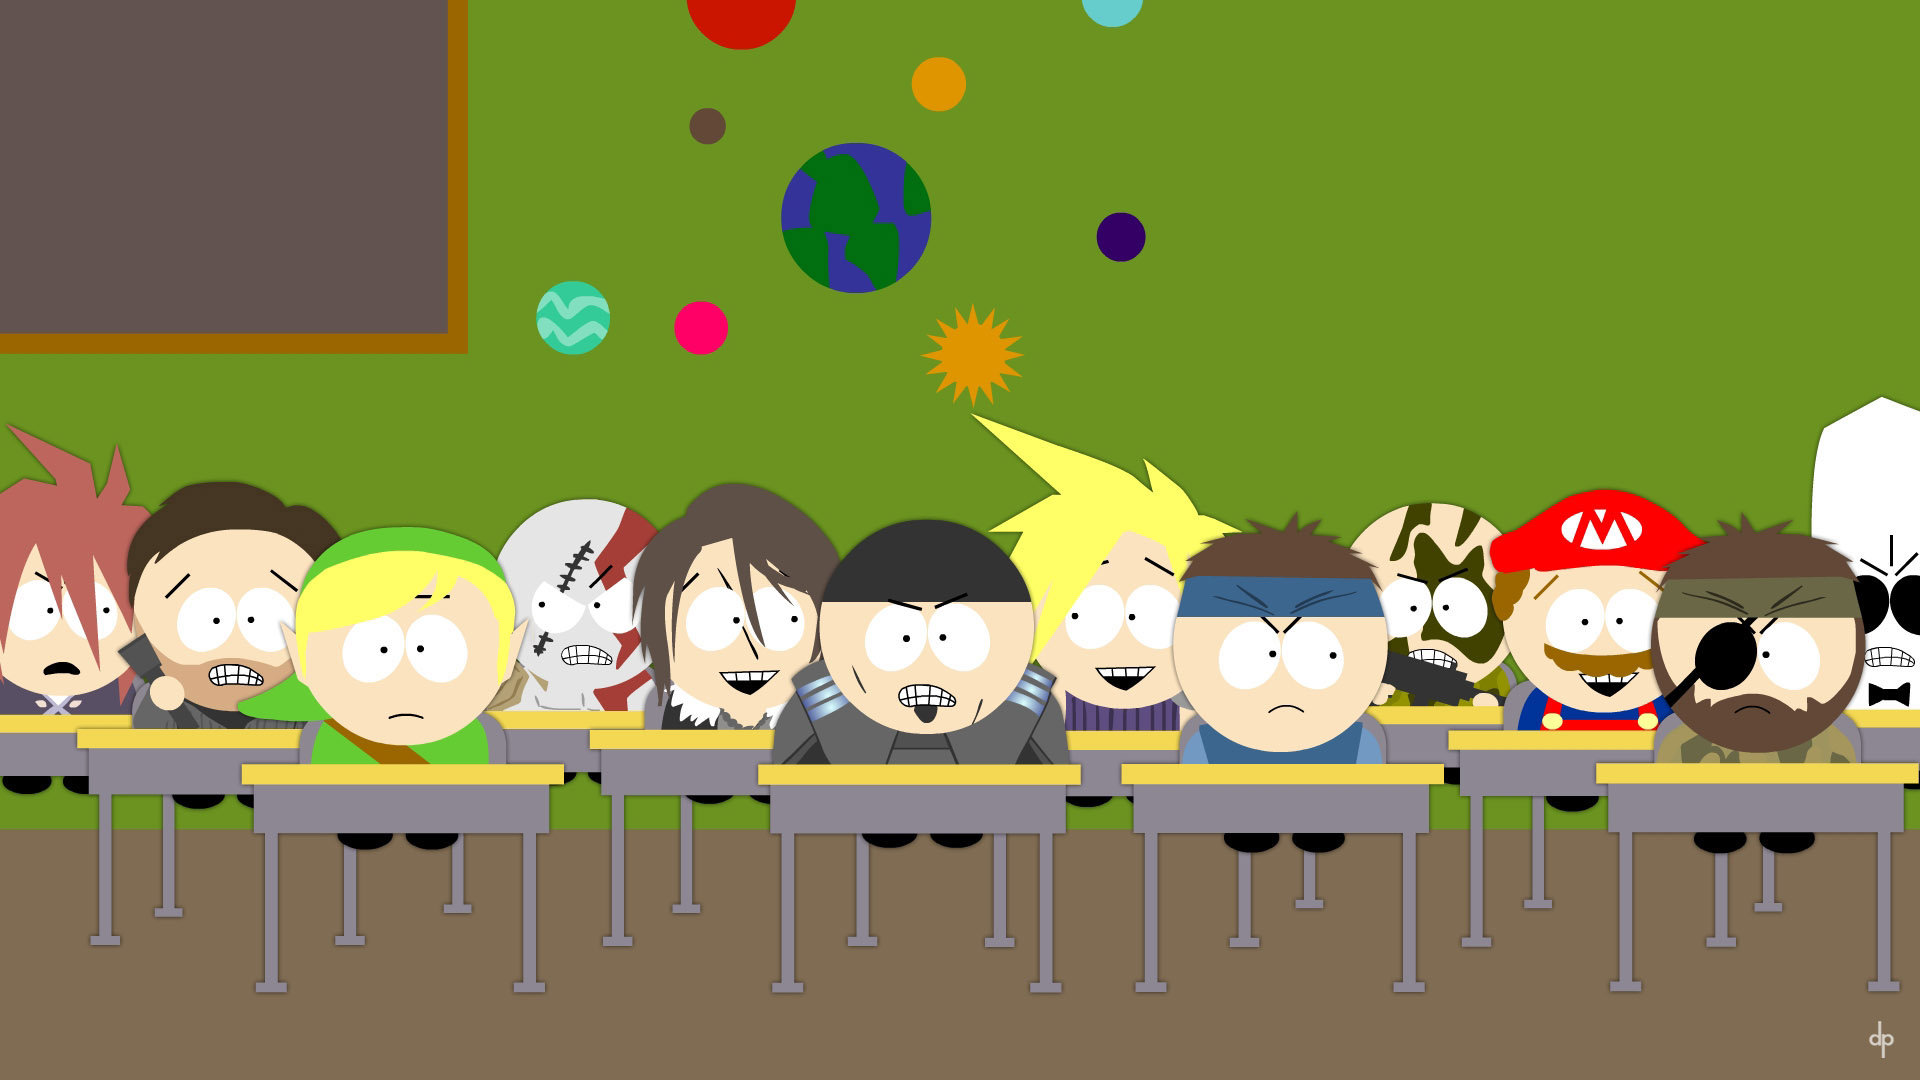 ... South Park videogame characters (Wallpaper) by dimitroncio